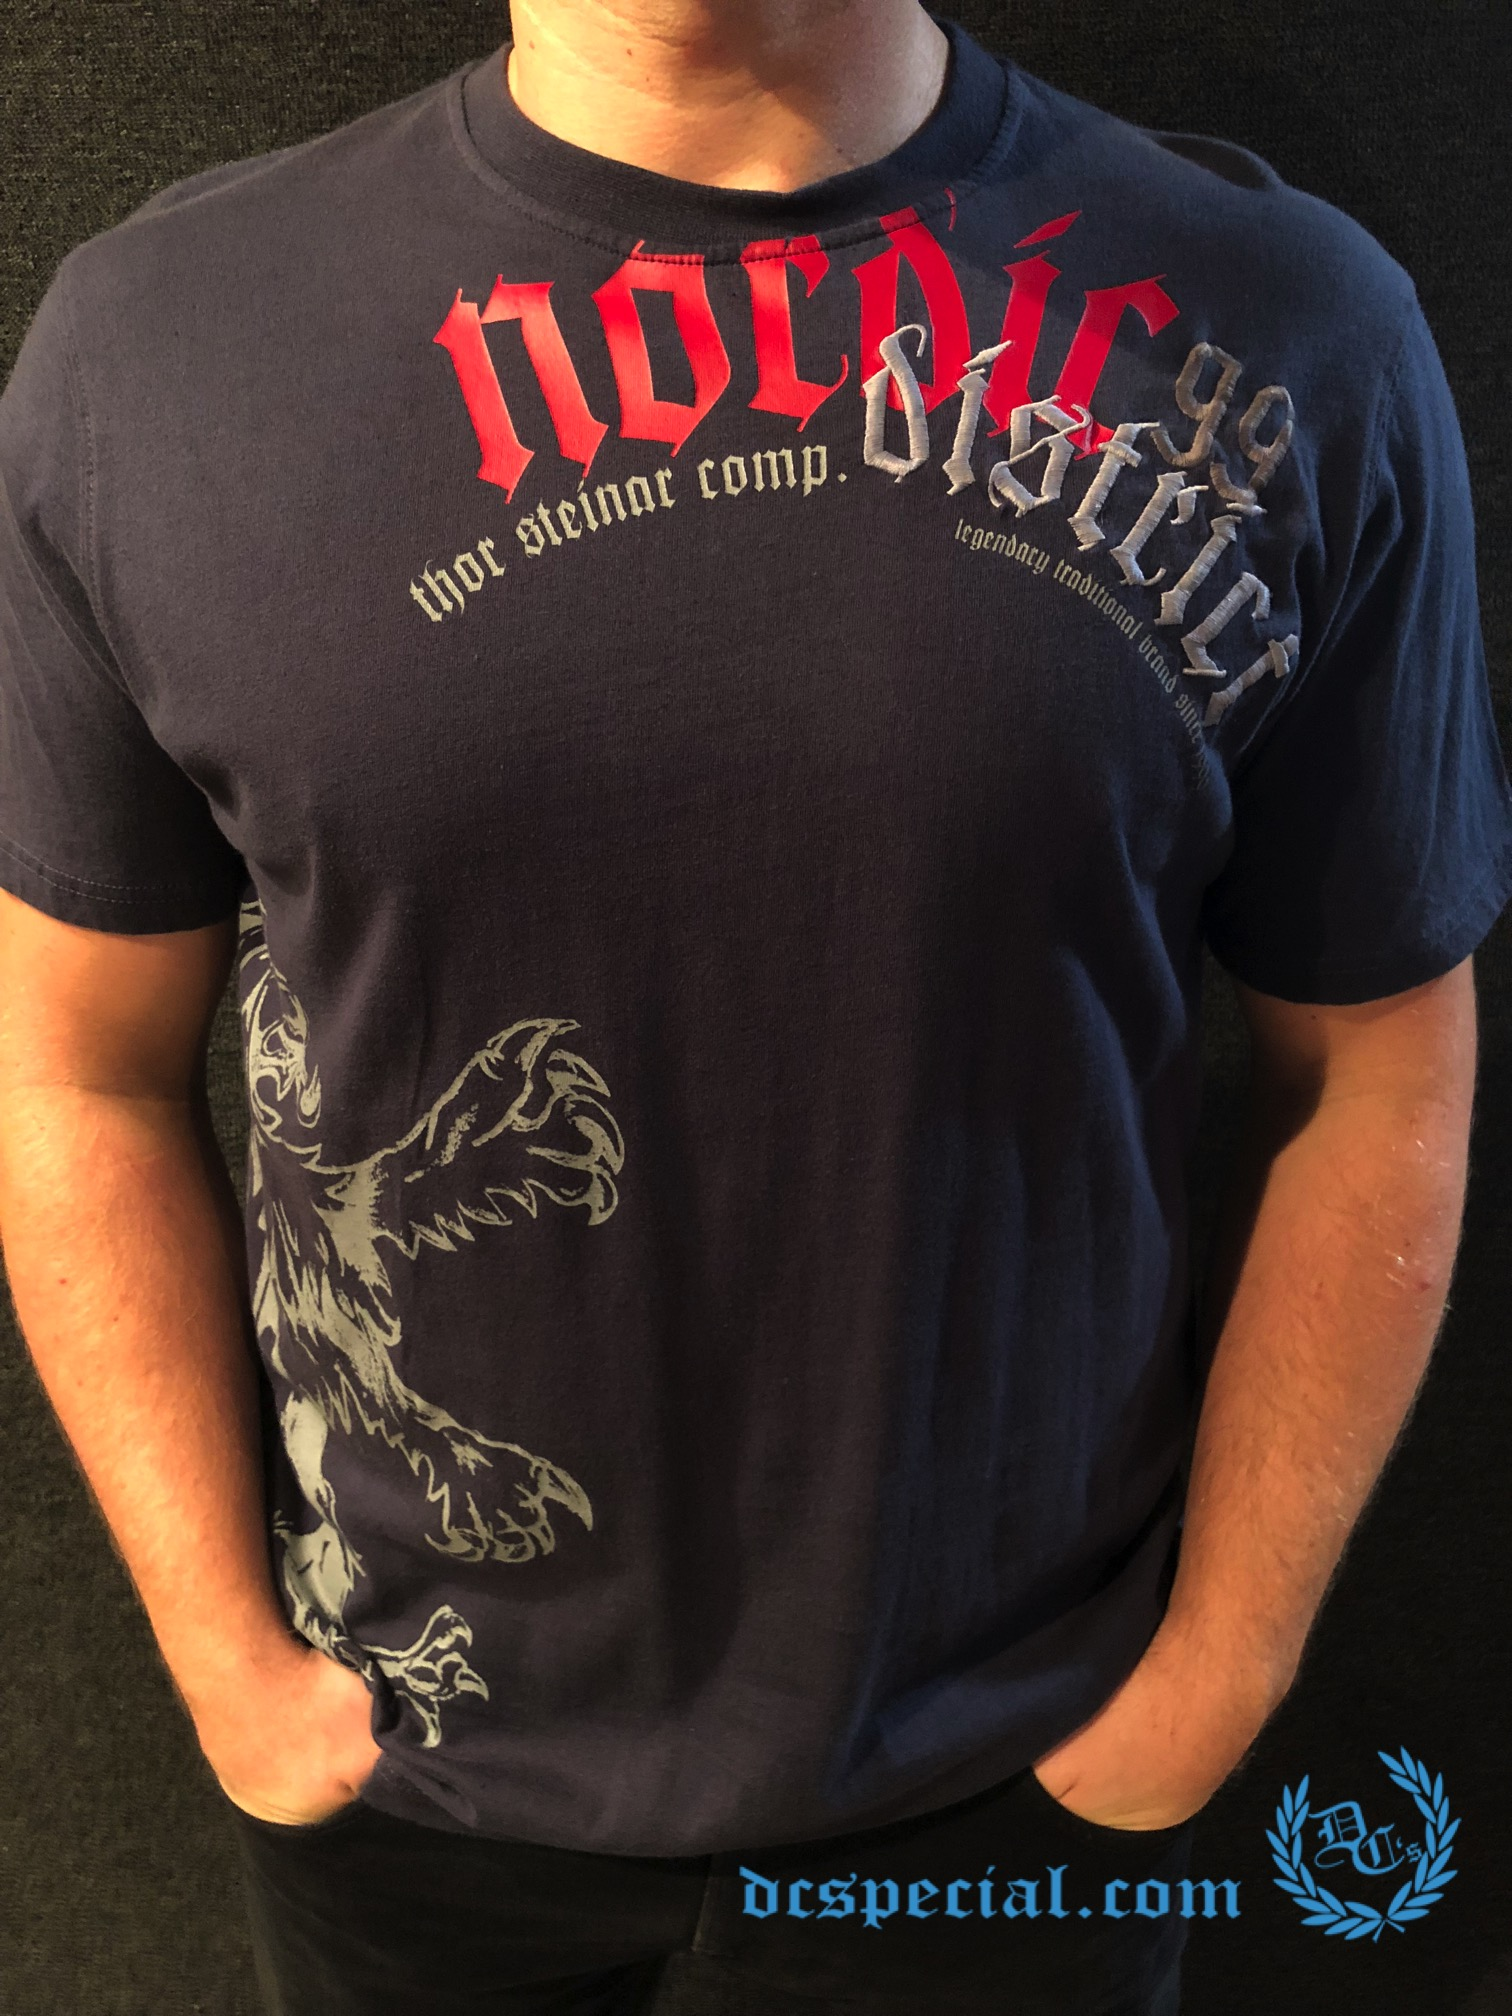 Thor Steinar T-shirt 'Nordic District'